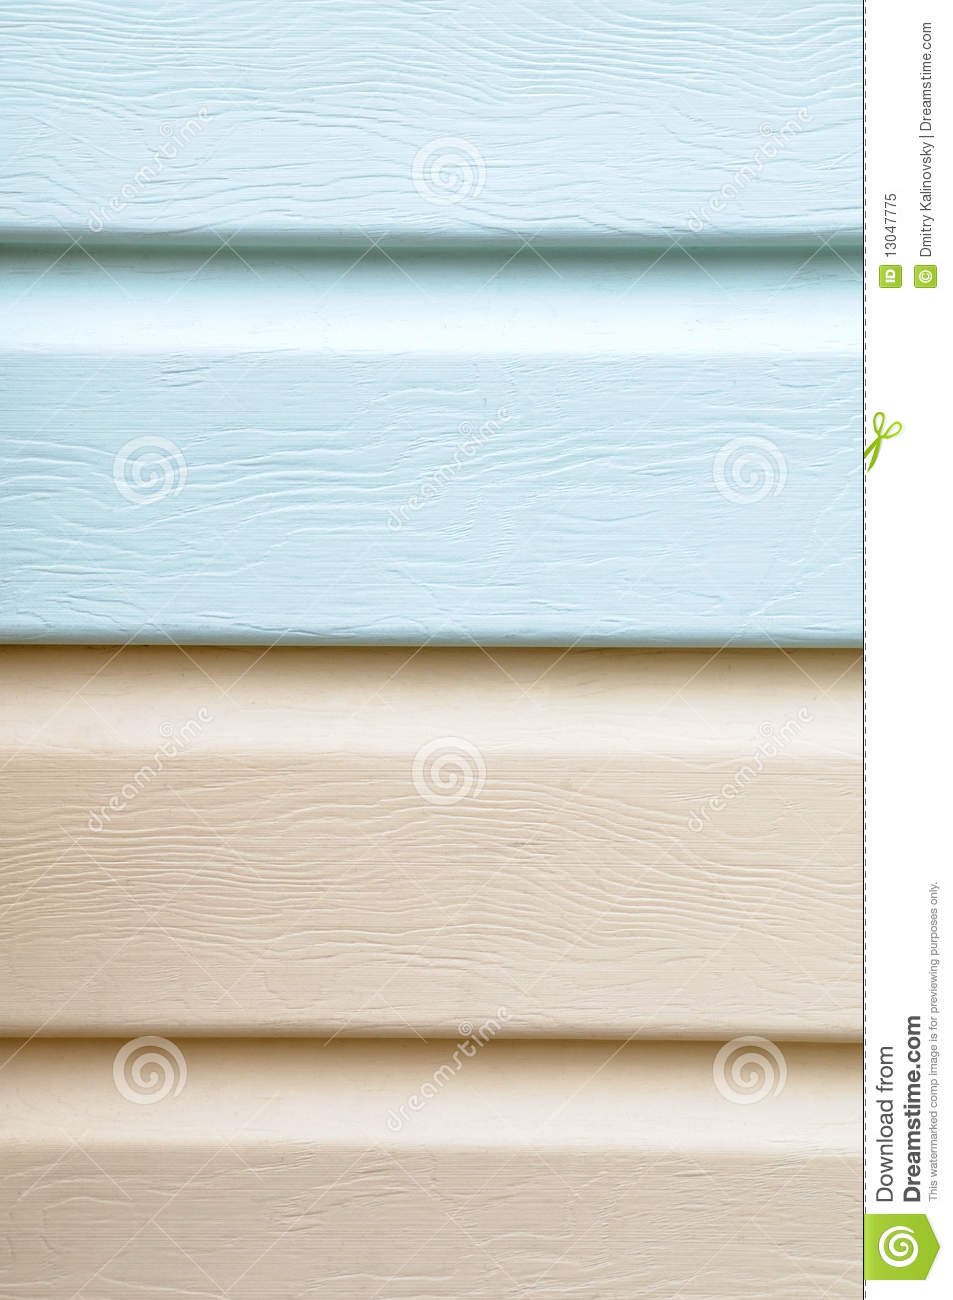 Vinyl Siding Material For Cladding Royalty Free Stock